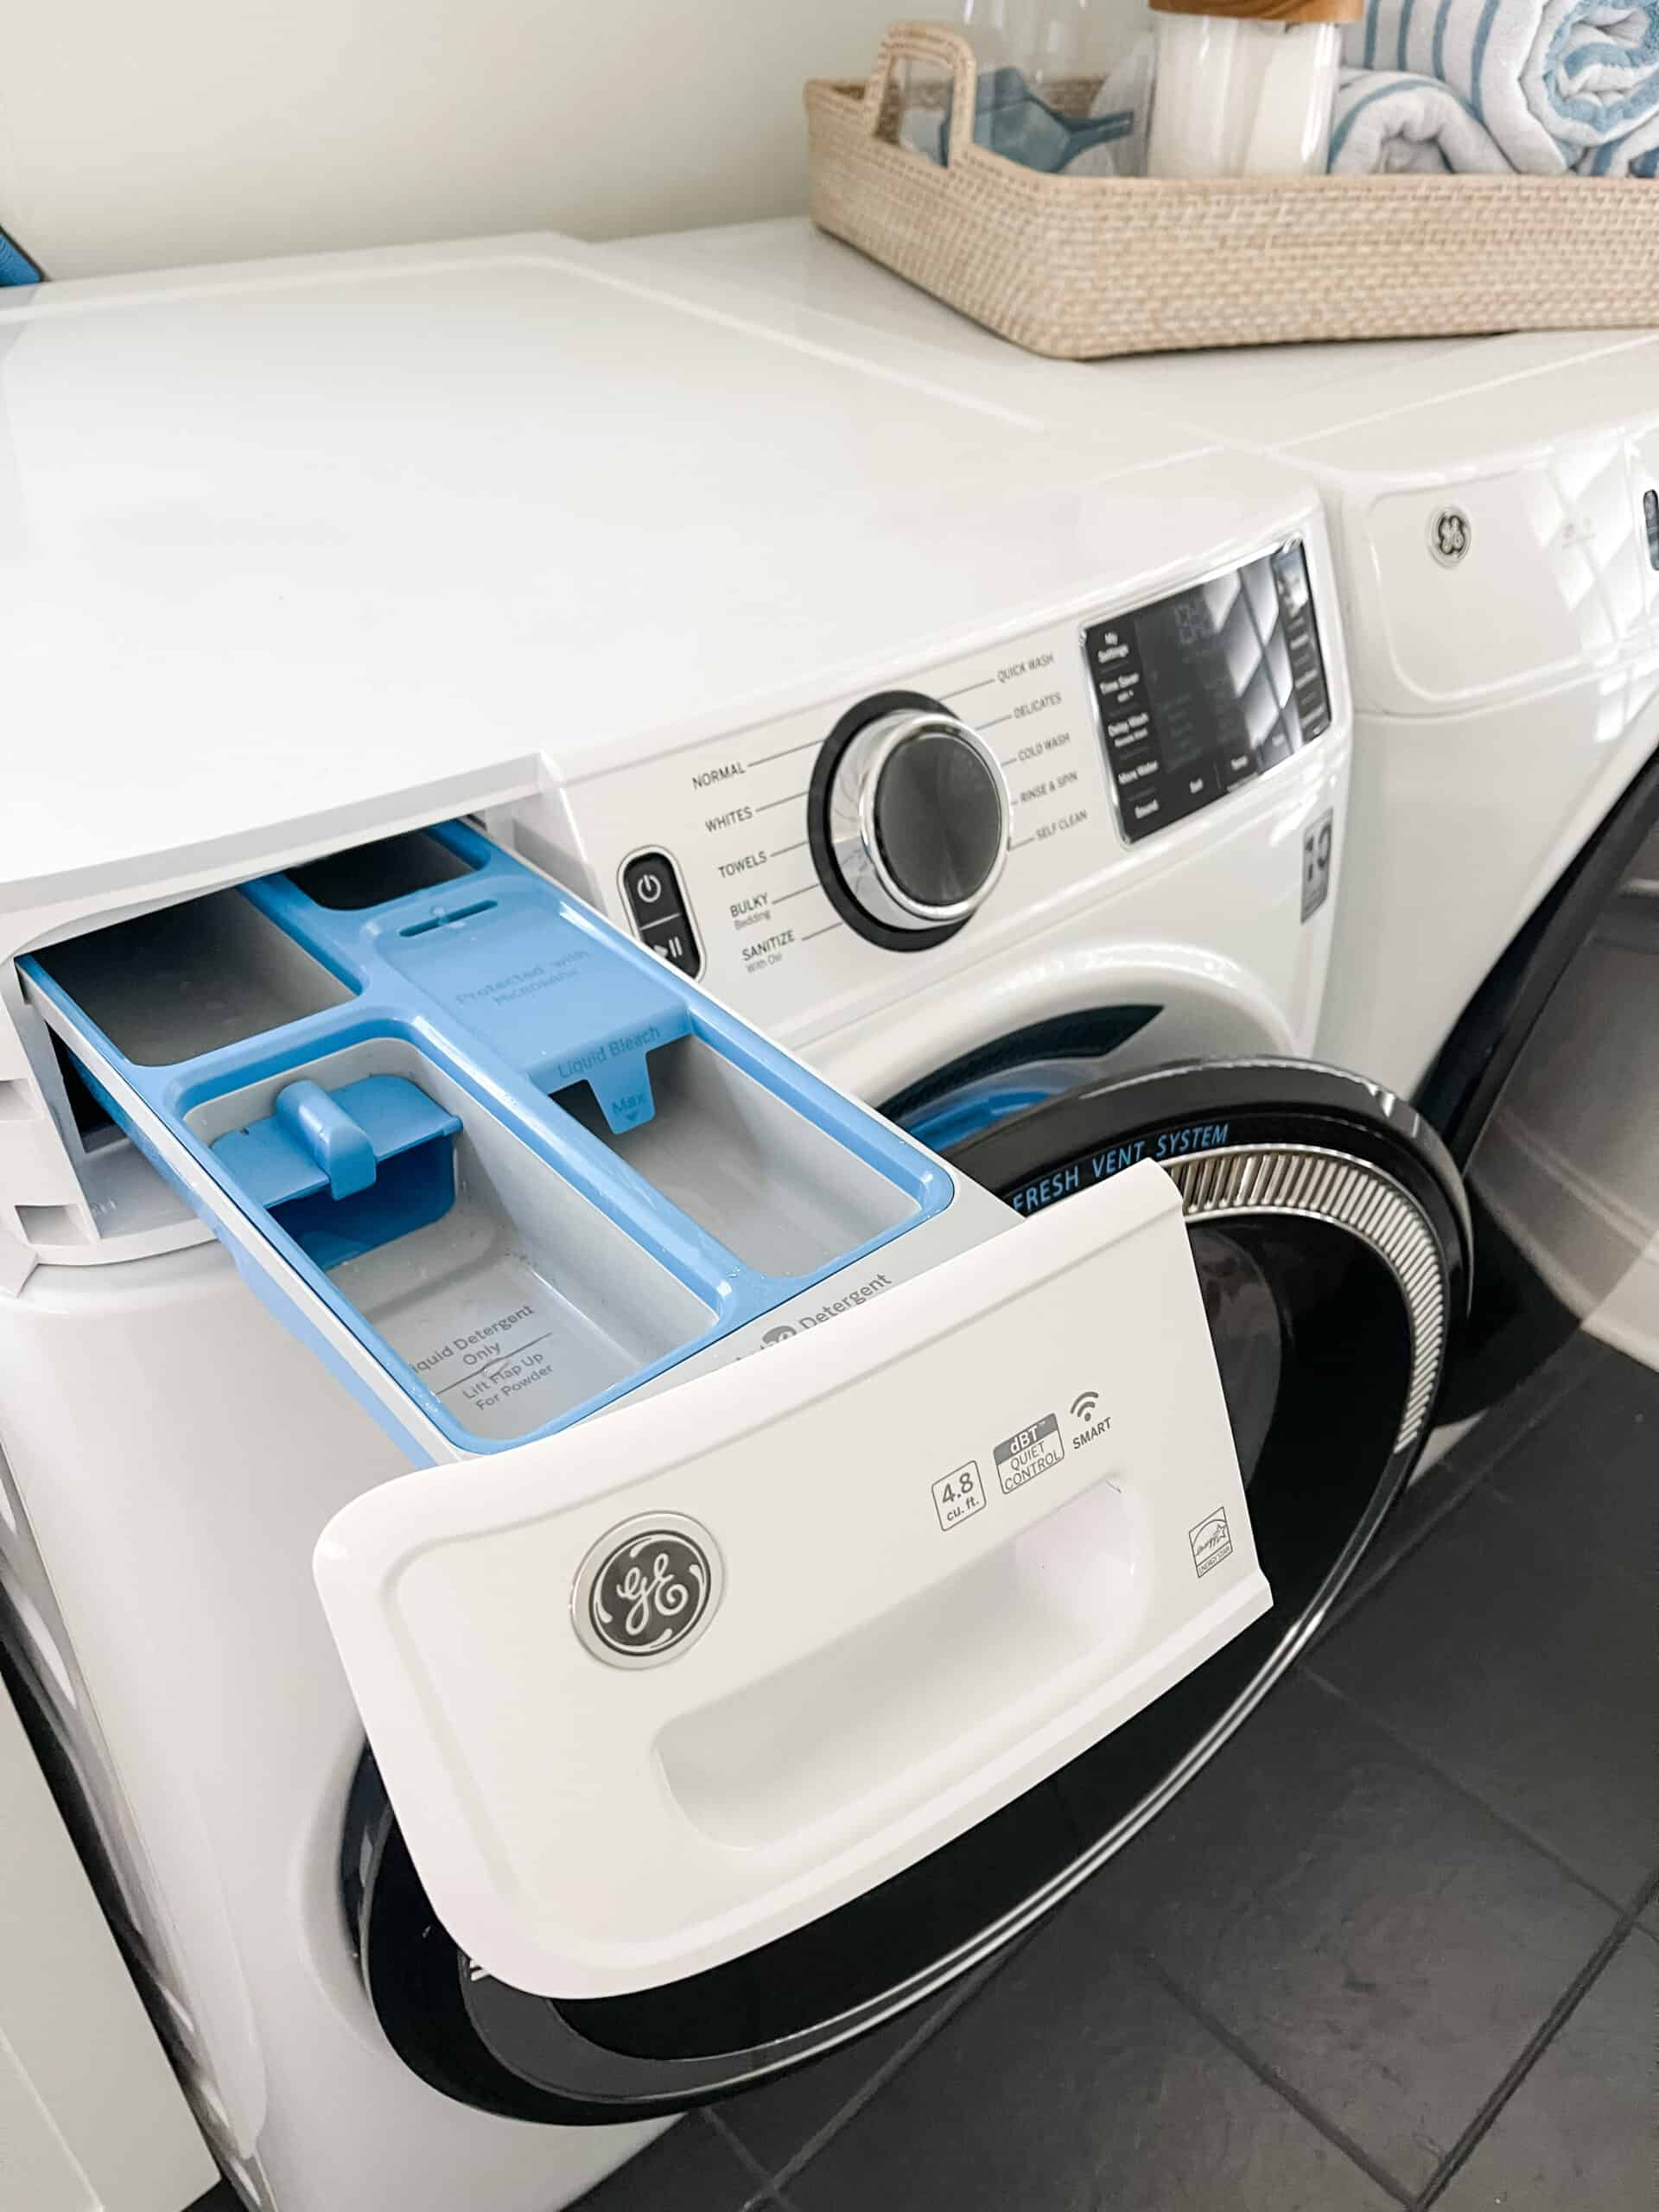 GE Ultrafresh Washer and Dryer review, leaving the door open to keep it fresh.